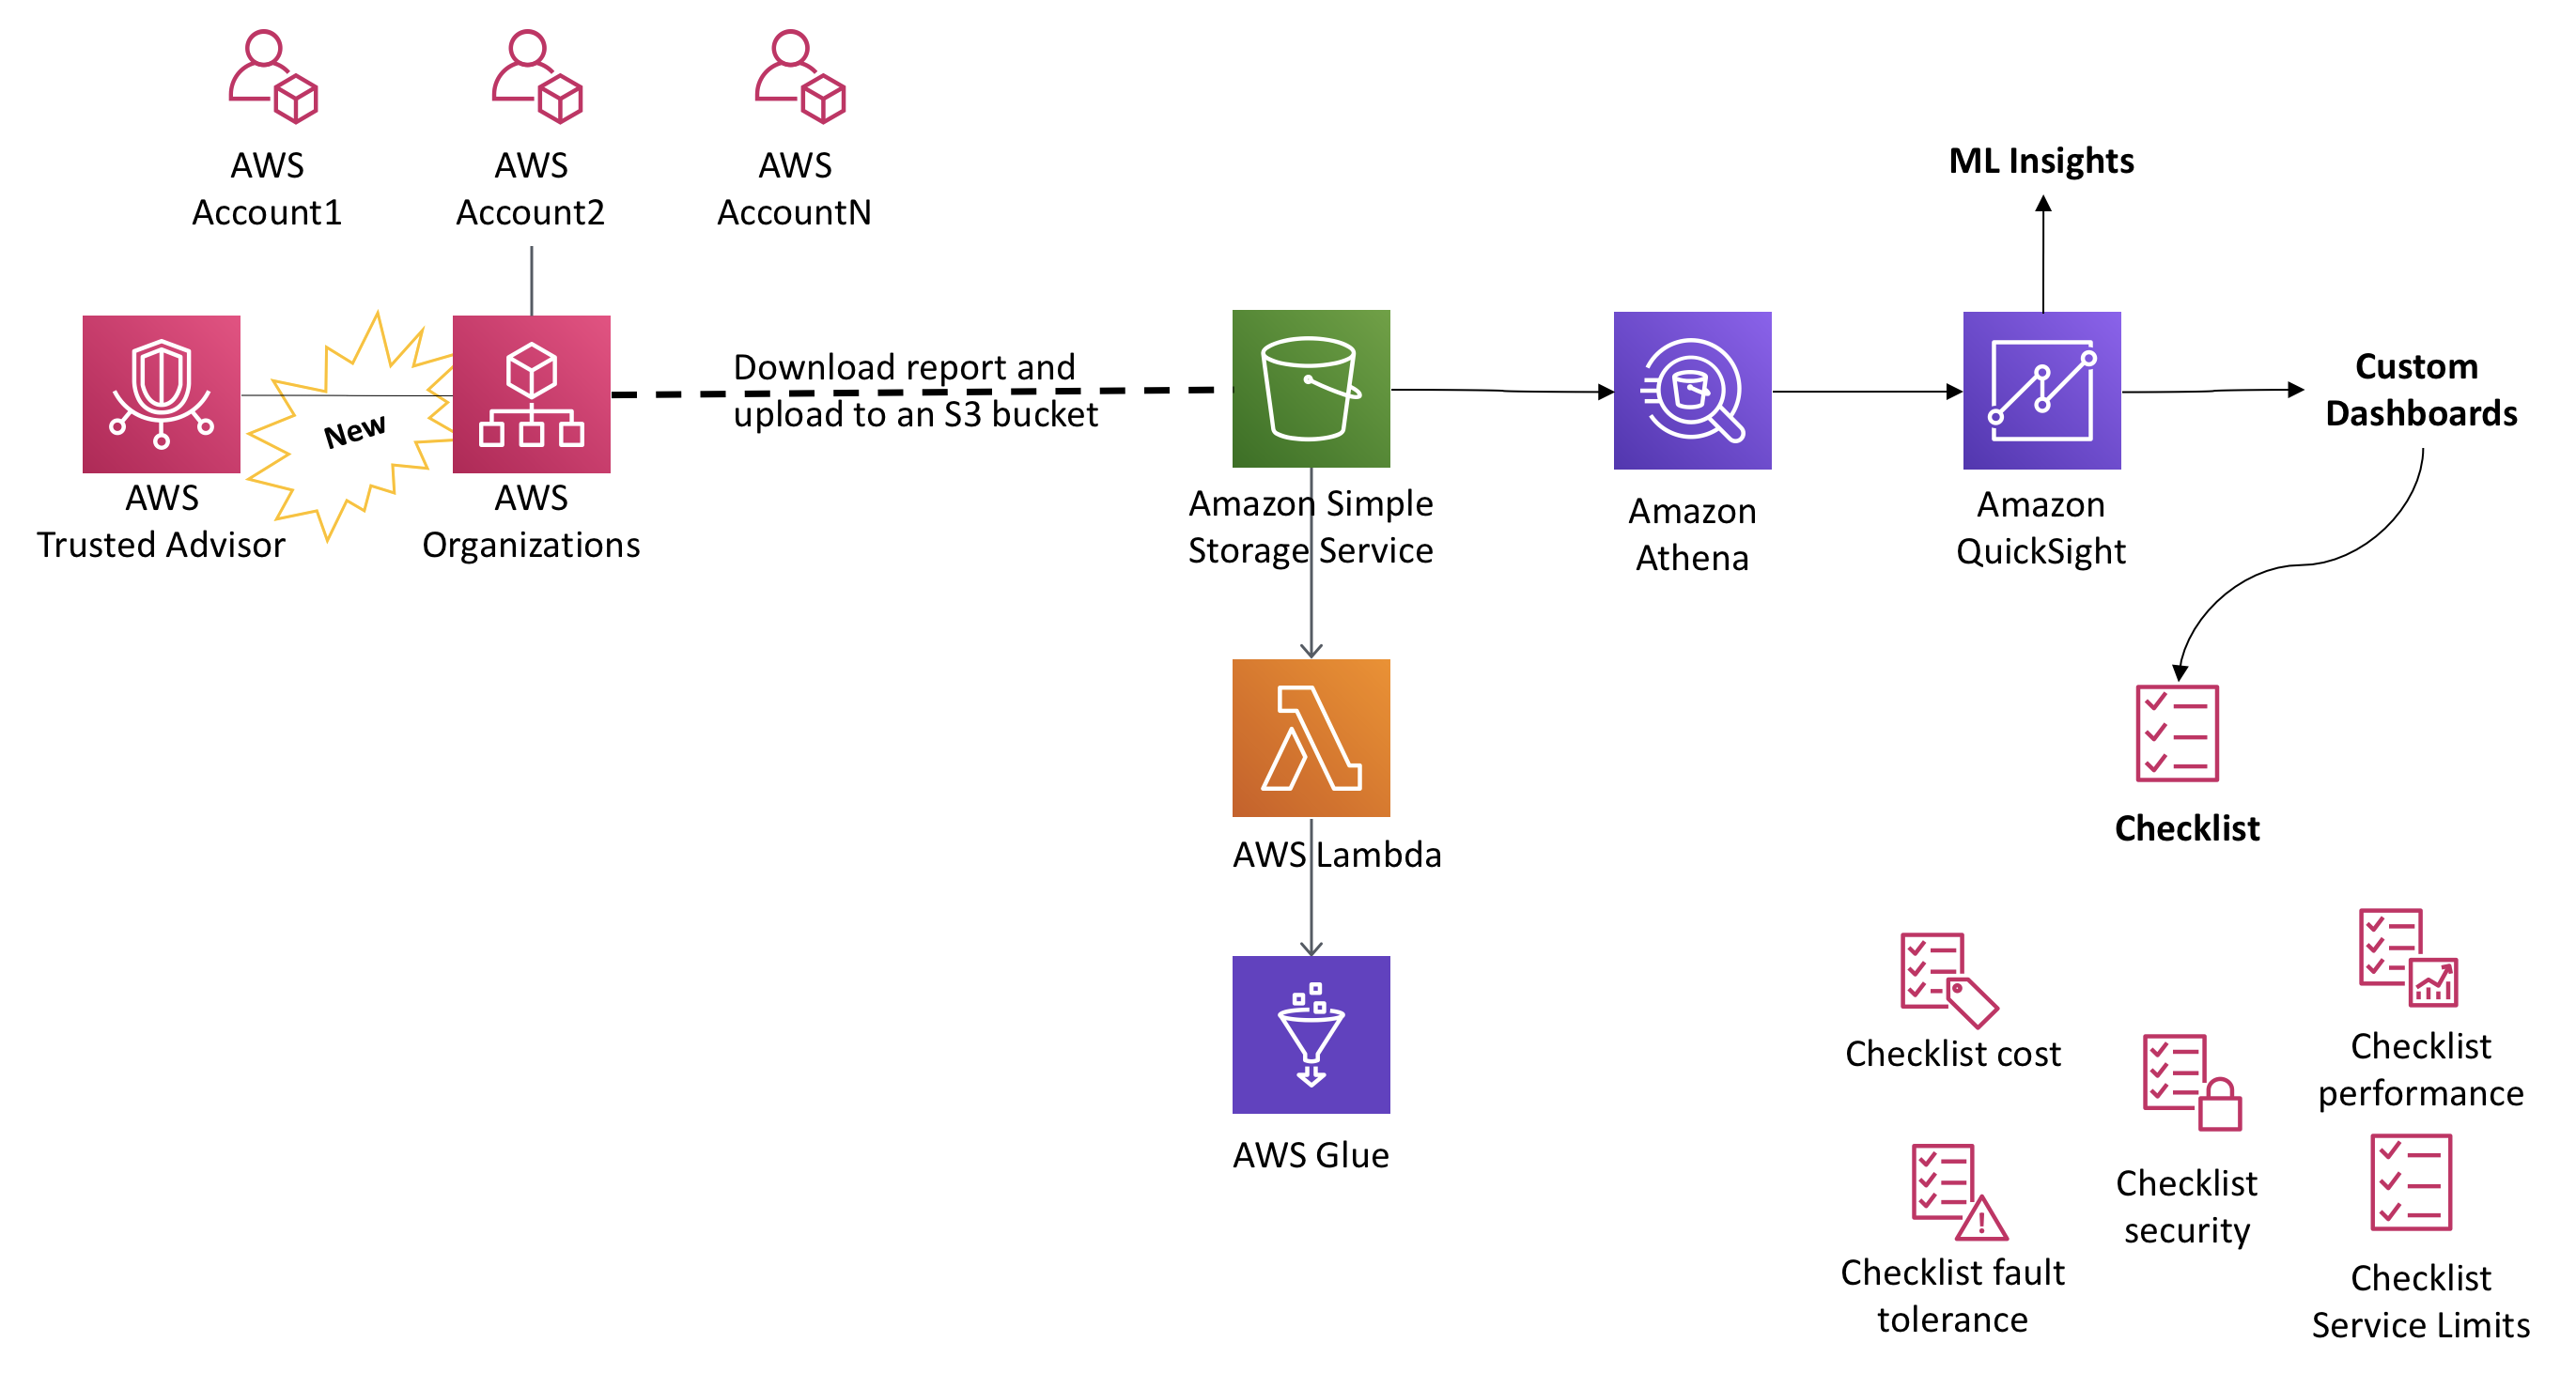 Architectural Diagram for Organizational View for AWS Trusted Advisor